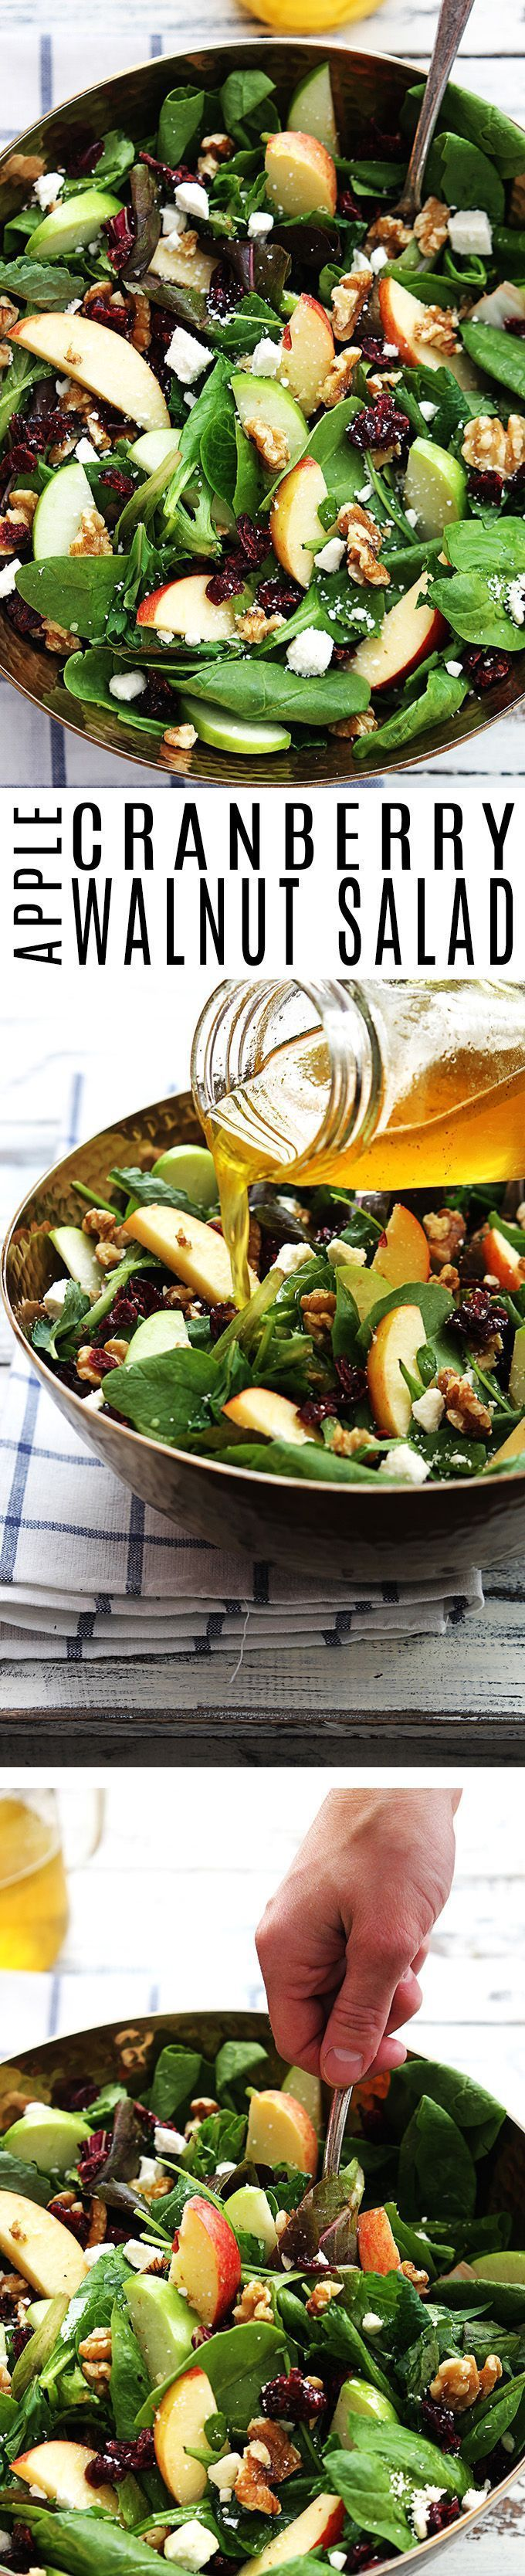 Fruchtiger Sommer / Herbstsalat mal anders: Mit Apfel, Walnuüssen, Cranberries und Feta *** Crisp apples, dried cranberries, feta cheese, and hearty walnuts come together in a fresh Autumn salad.